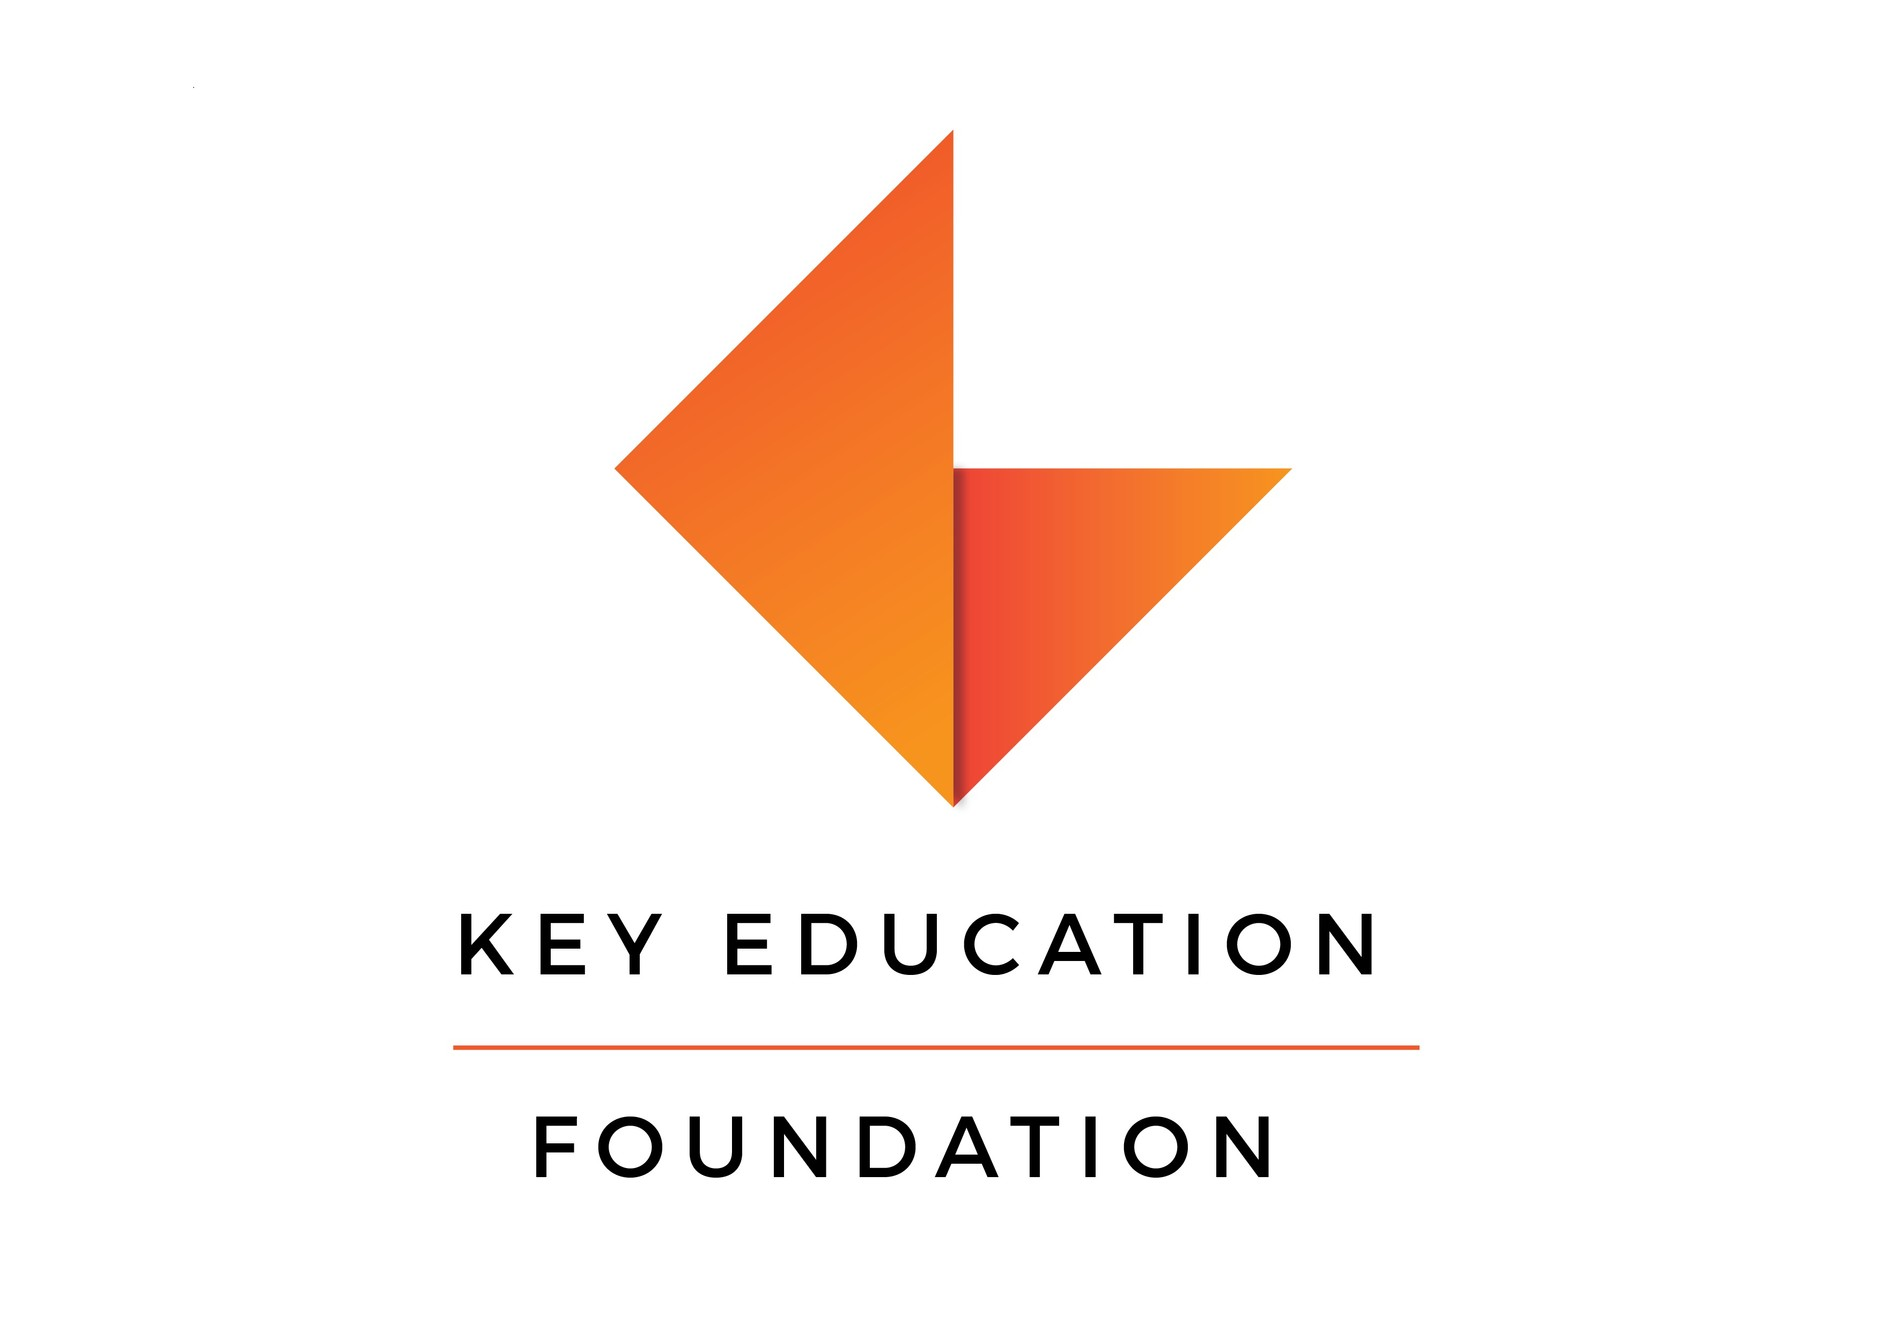 Key Education Foundation, Bangalore